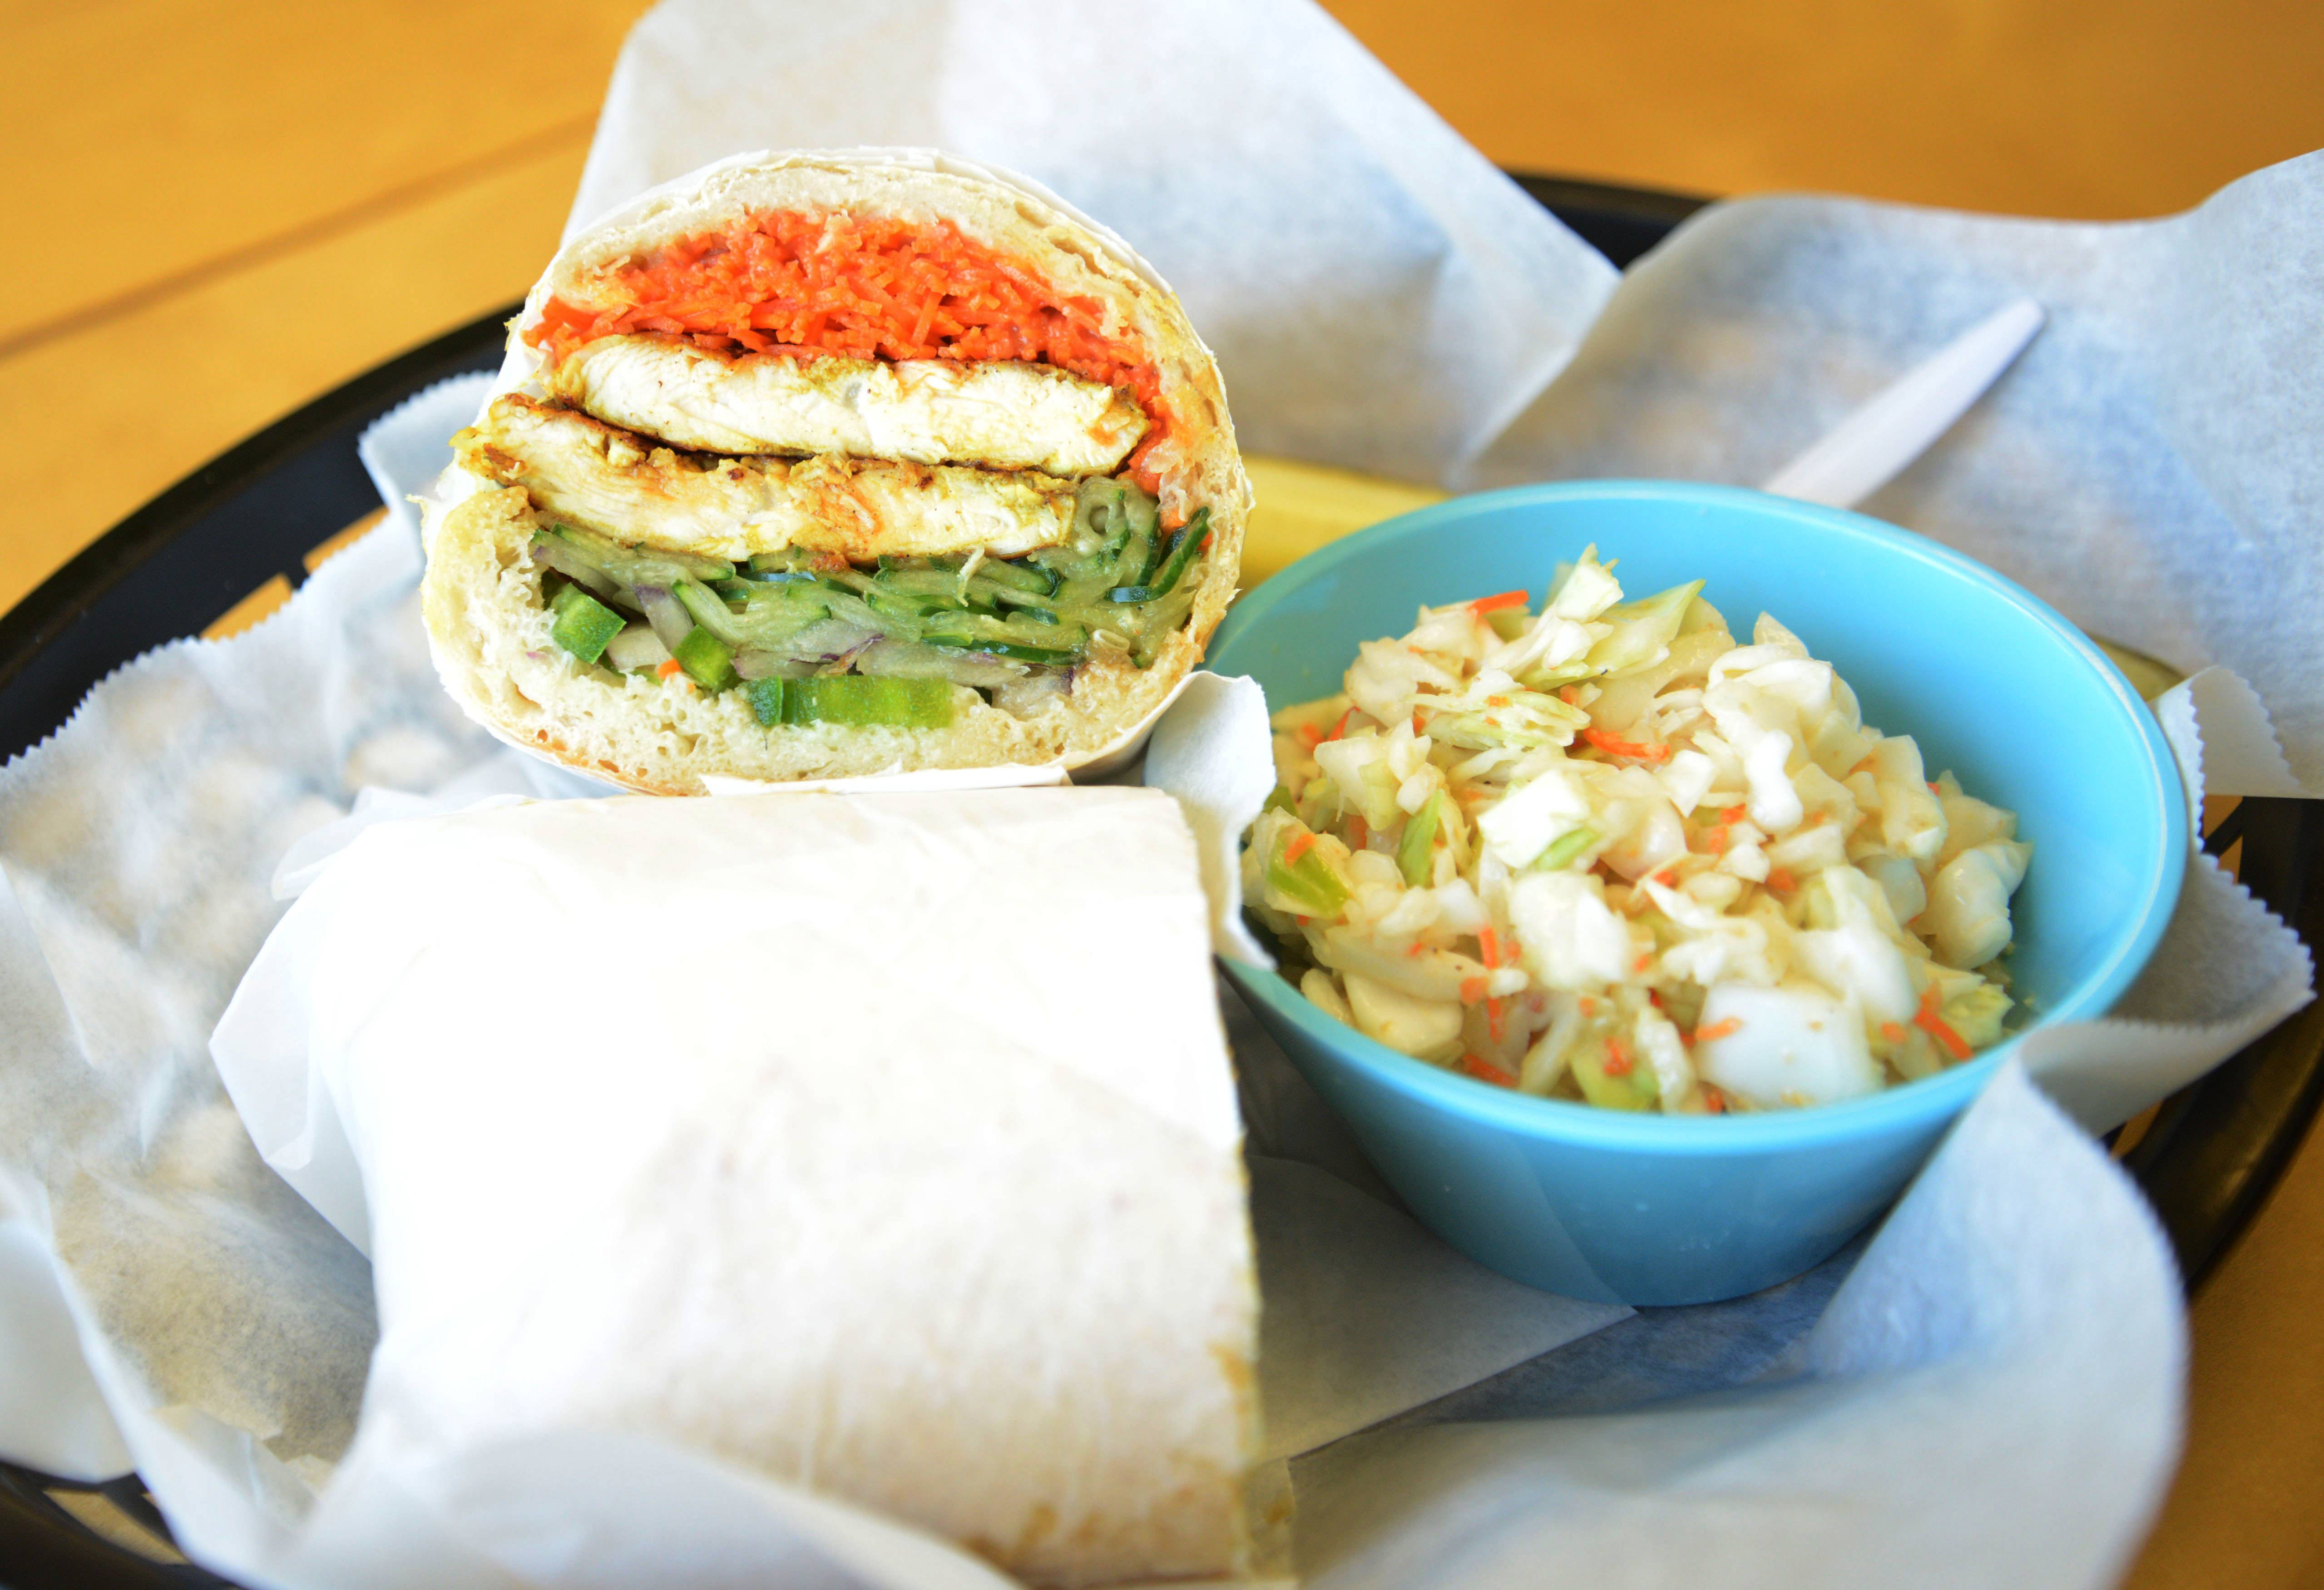 The Bryanism sandwich and gingered coleslaw grace a table at Zenwich in Elmhurst.